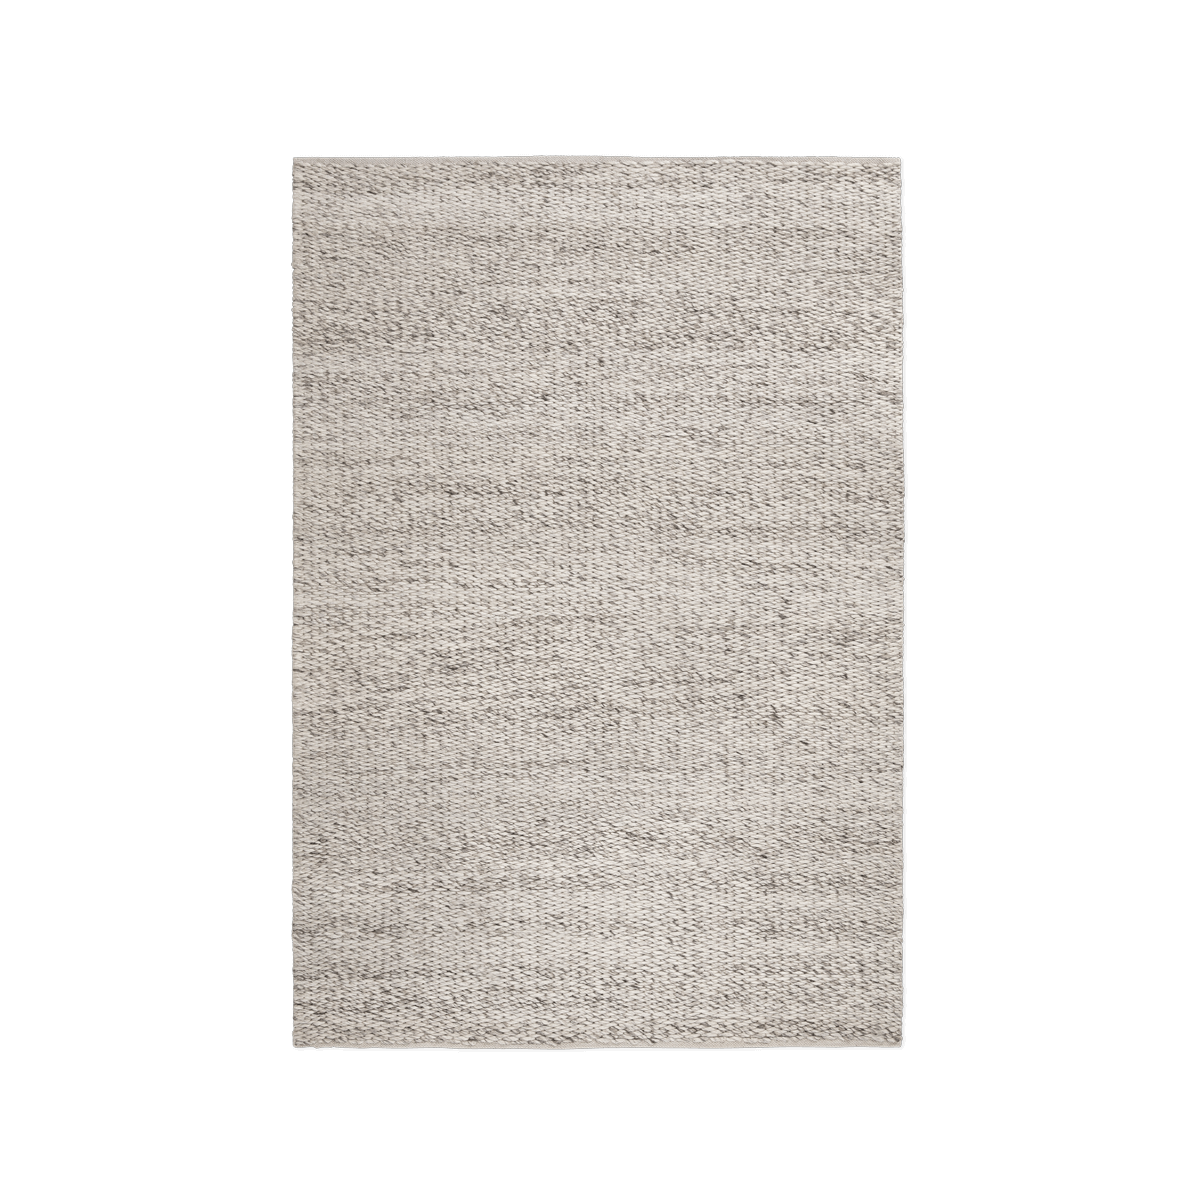 Product image of the chunky flatweave rug Dunes in the color Melange. It has a thick, braided texture.